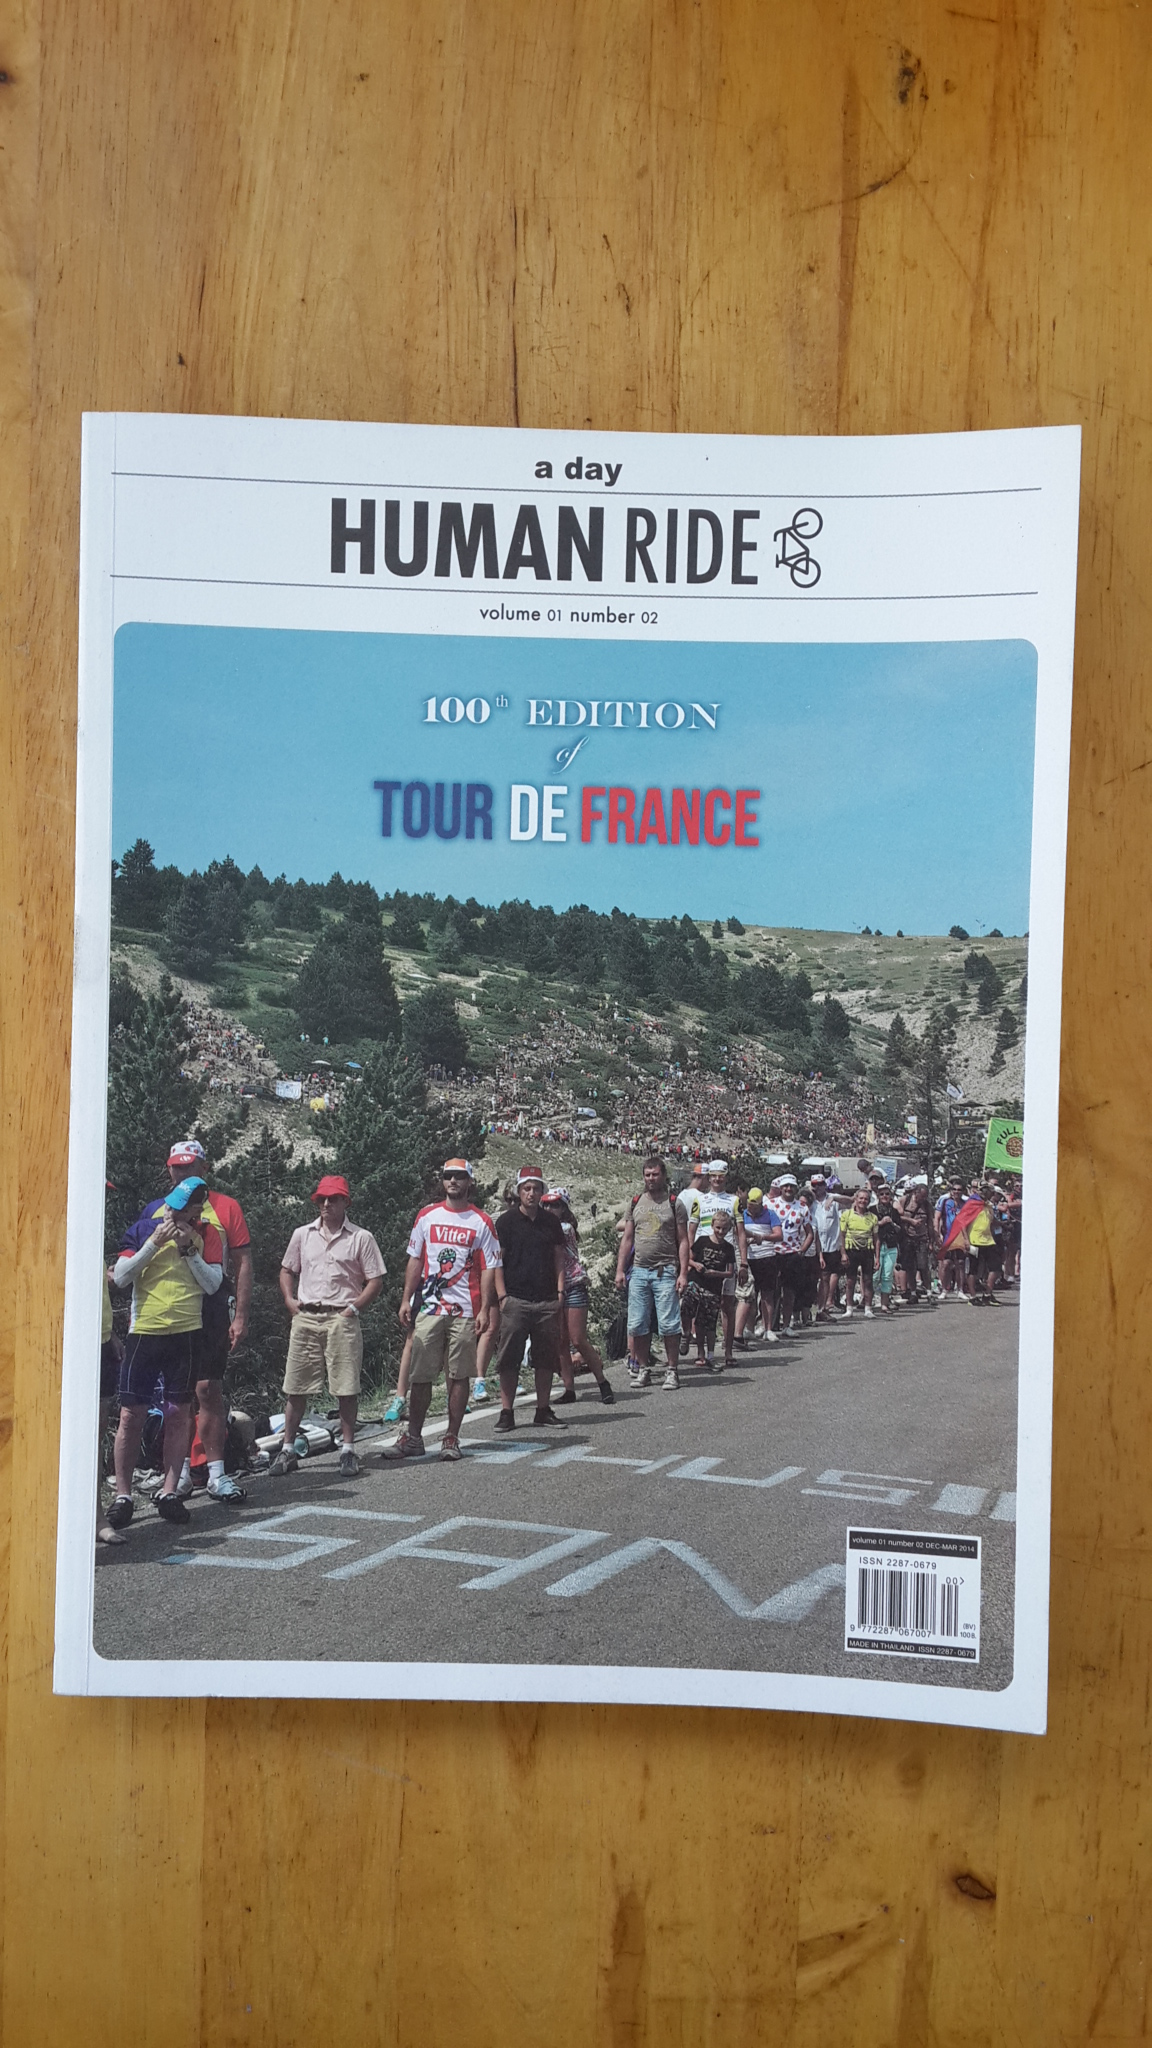 a day HUMAN RIDE : volume 01 number 02